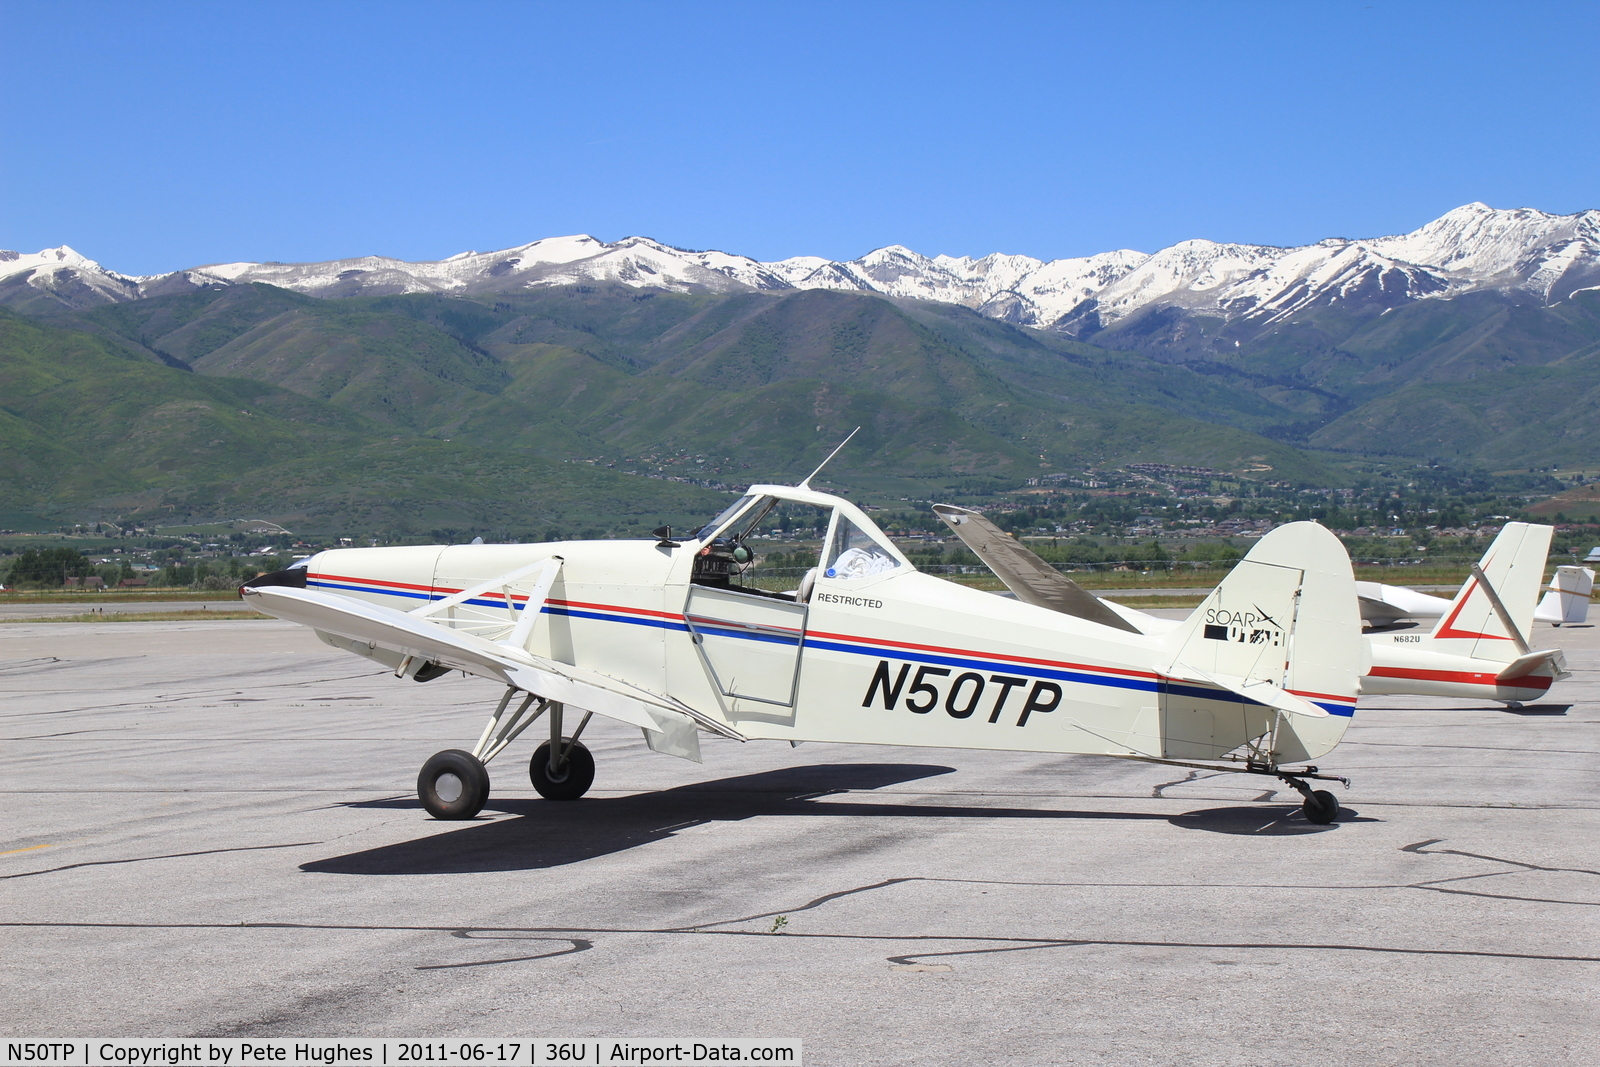 N50TP, Piper PA-25-235 C/N 25-2341, N50TP Pawnee gilder tug ready for action at Heber Valley Utah